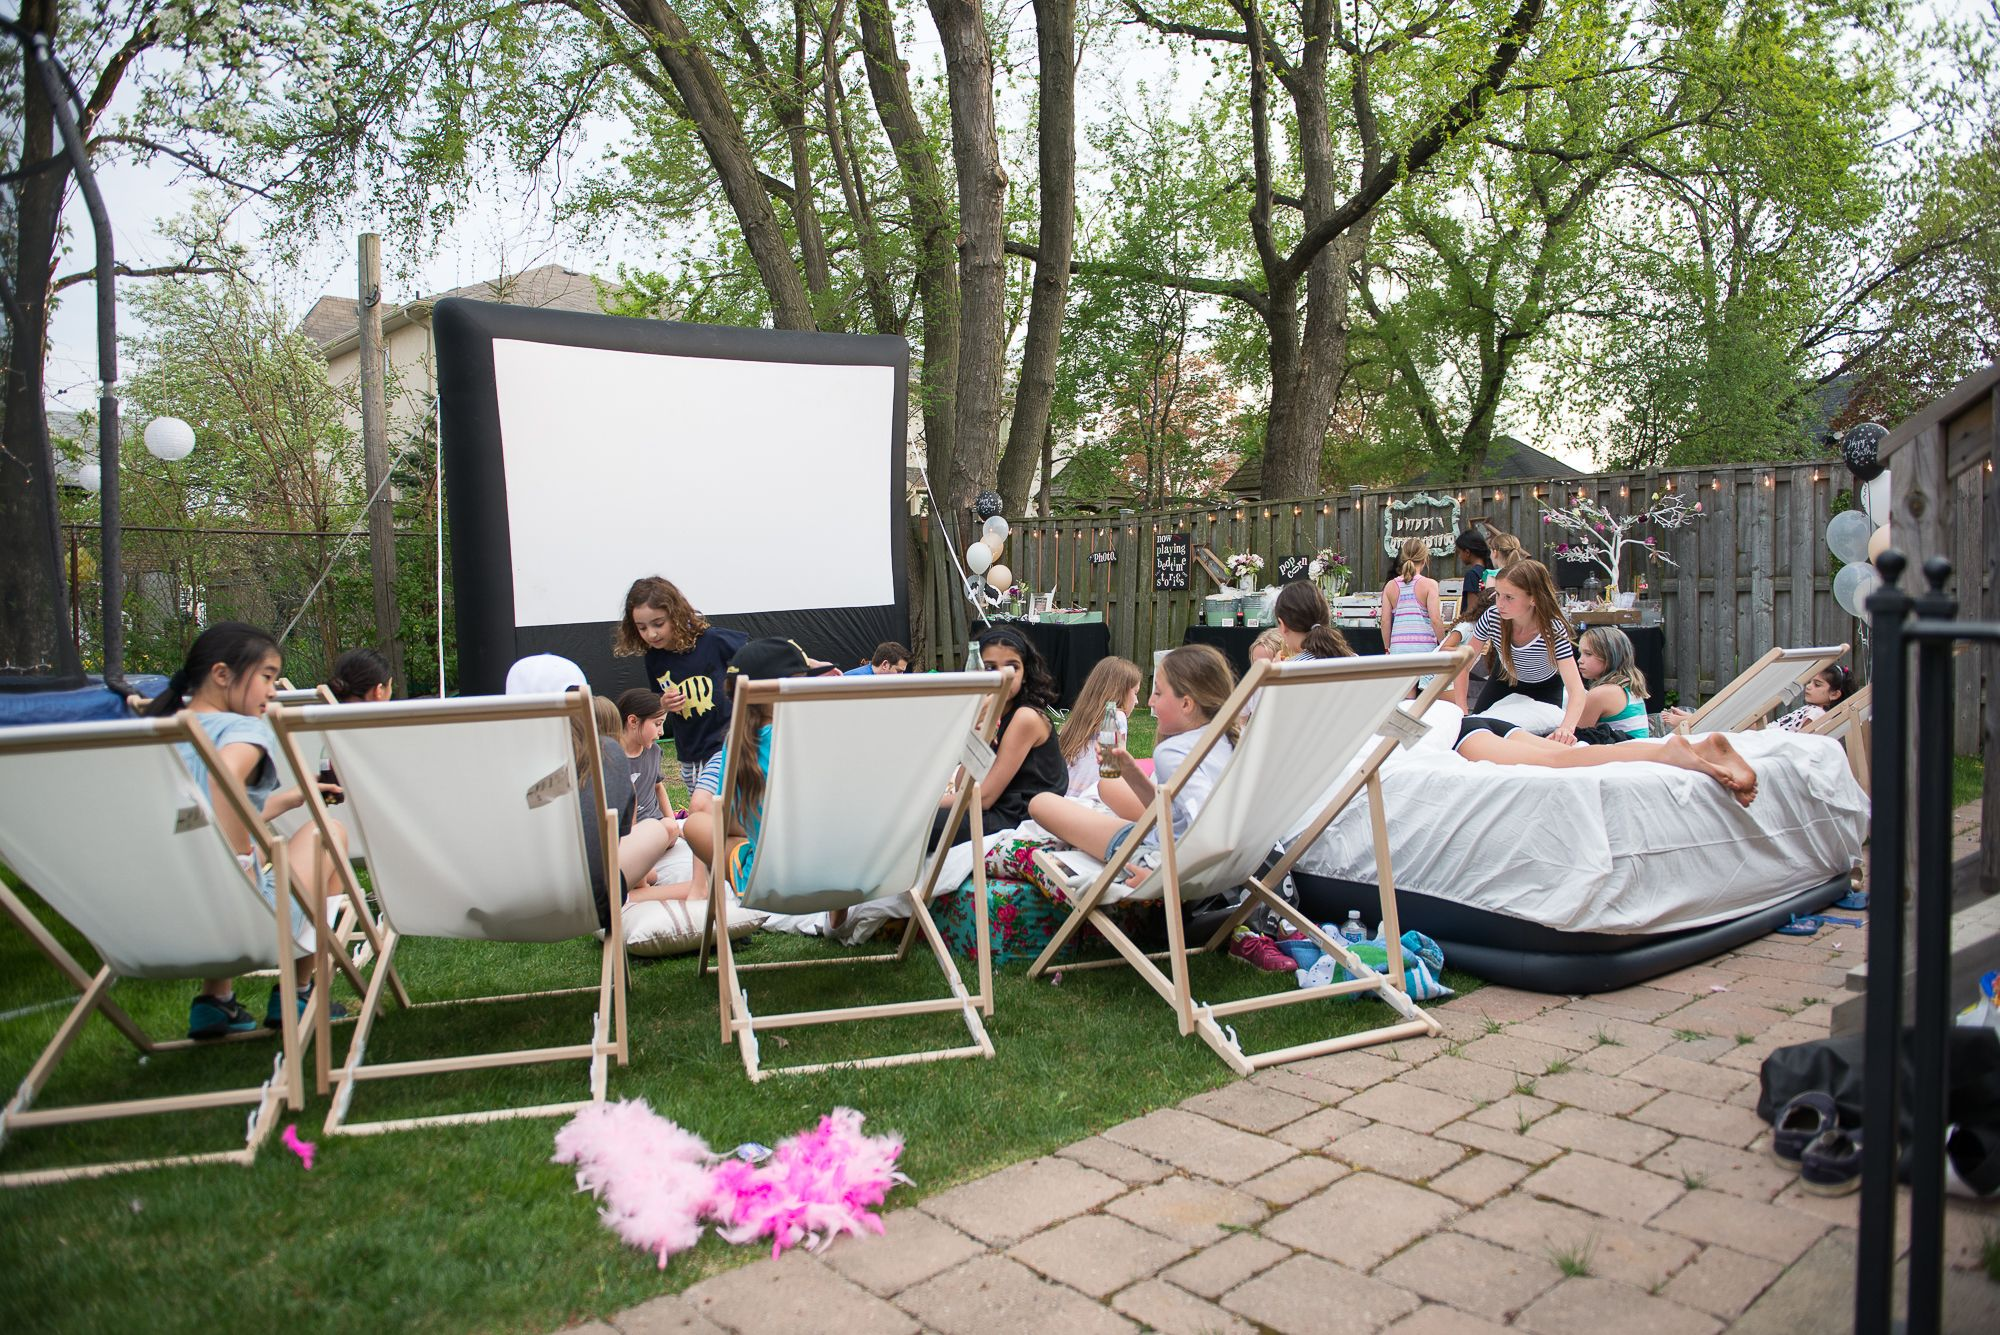 inflatable screen for outdoor movie party and inflatable